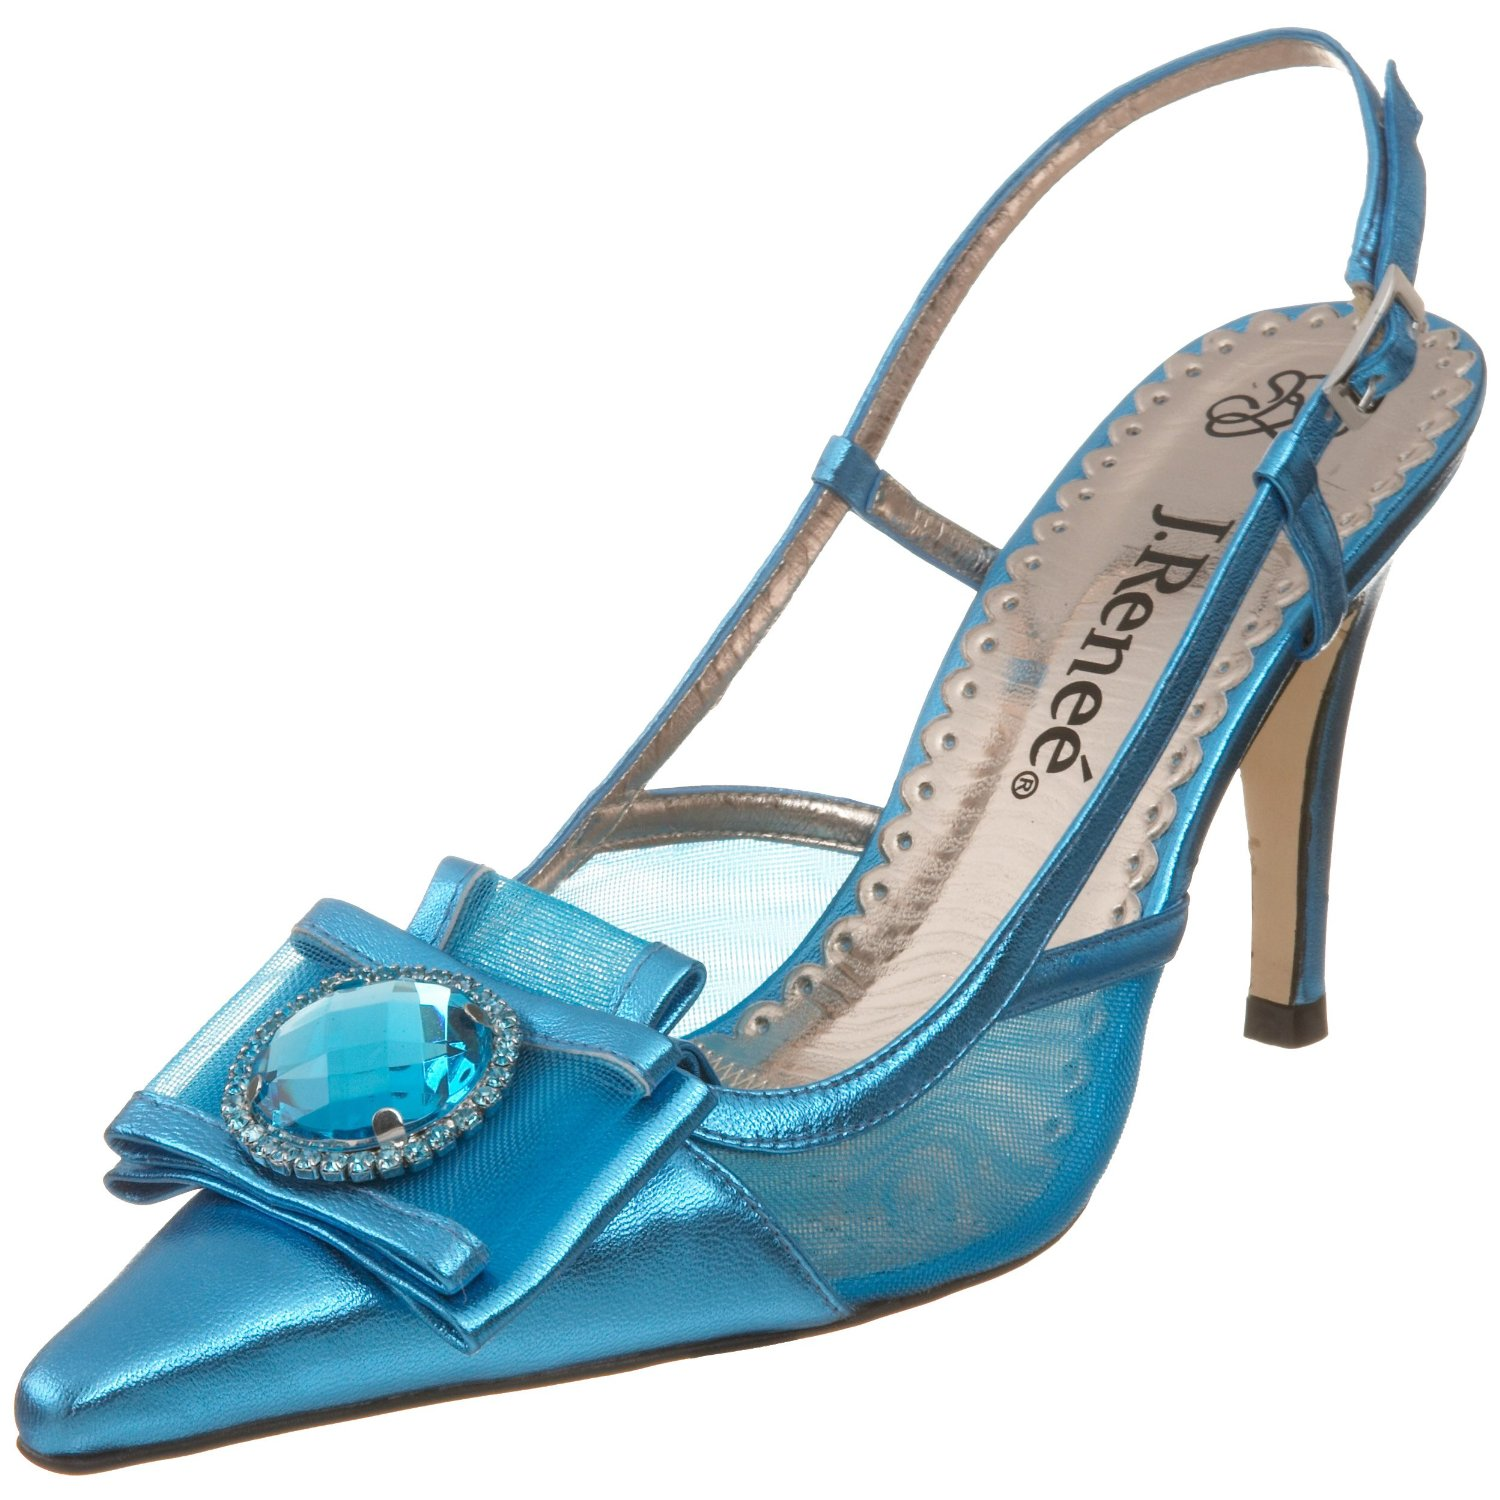 Silver www.bet at home.com bet at home Bayernu Prom Shoes